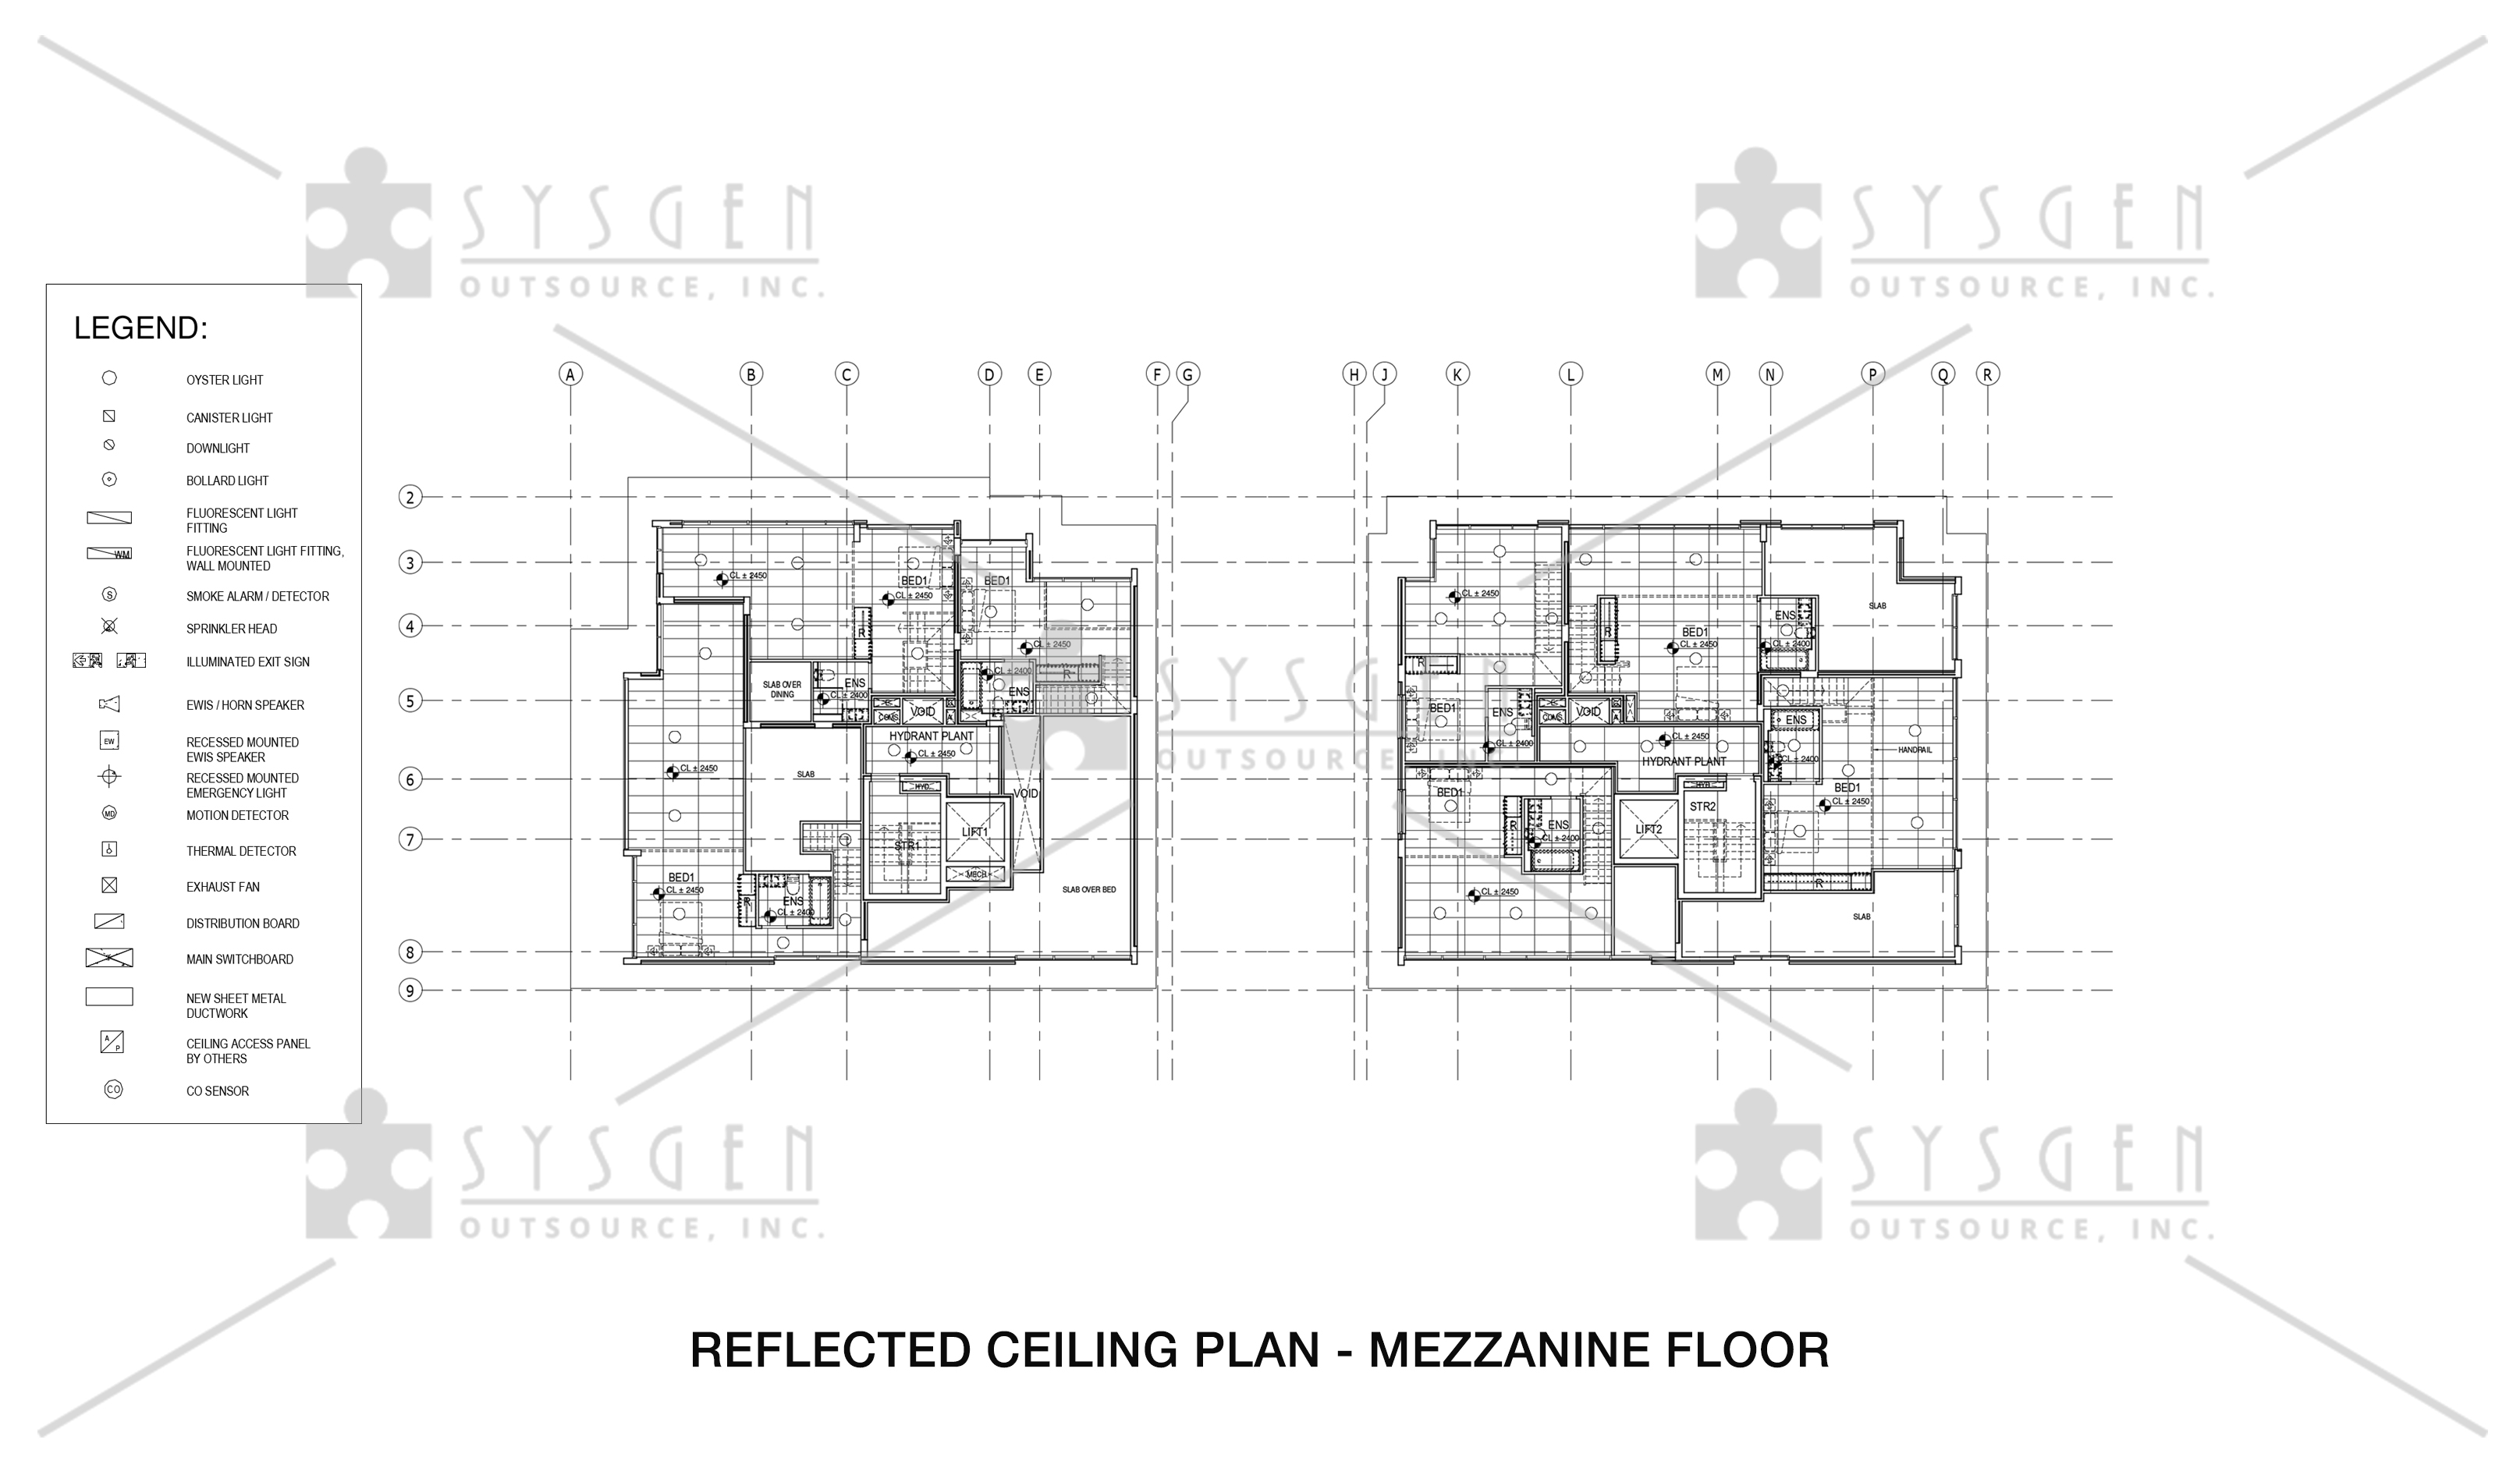 sysgen-outsource-cad-outsourcing-services-cad-conversion-revit-4-storey-residentialss31